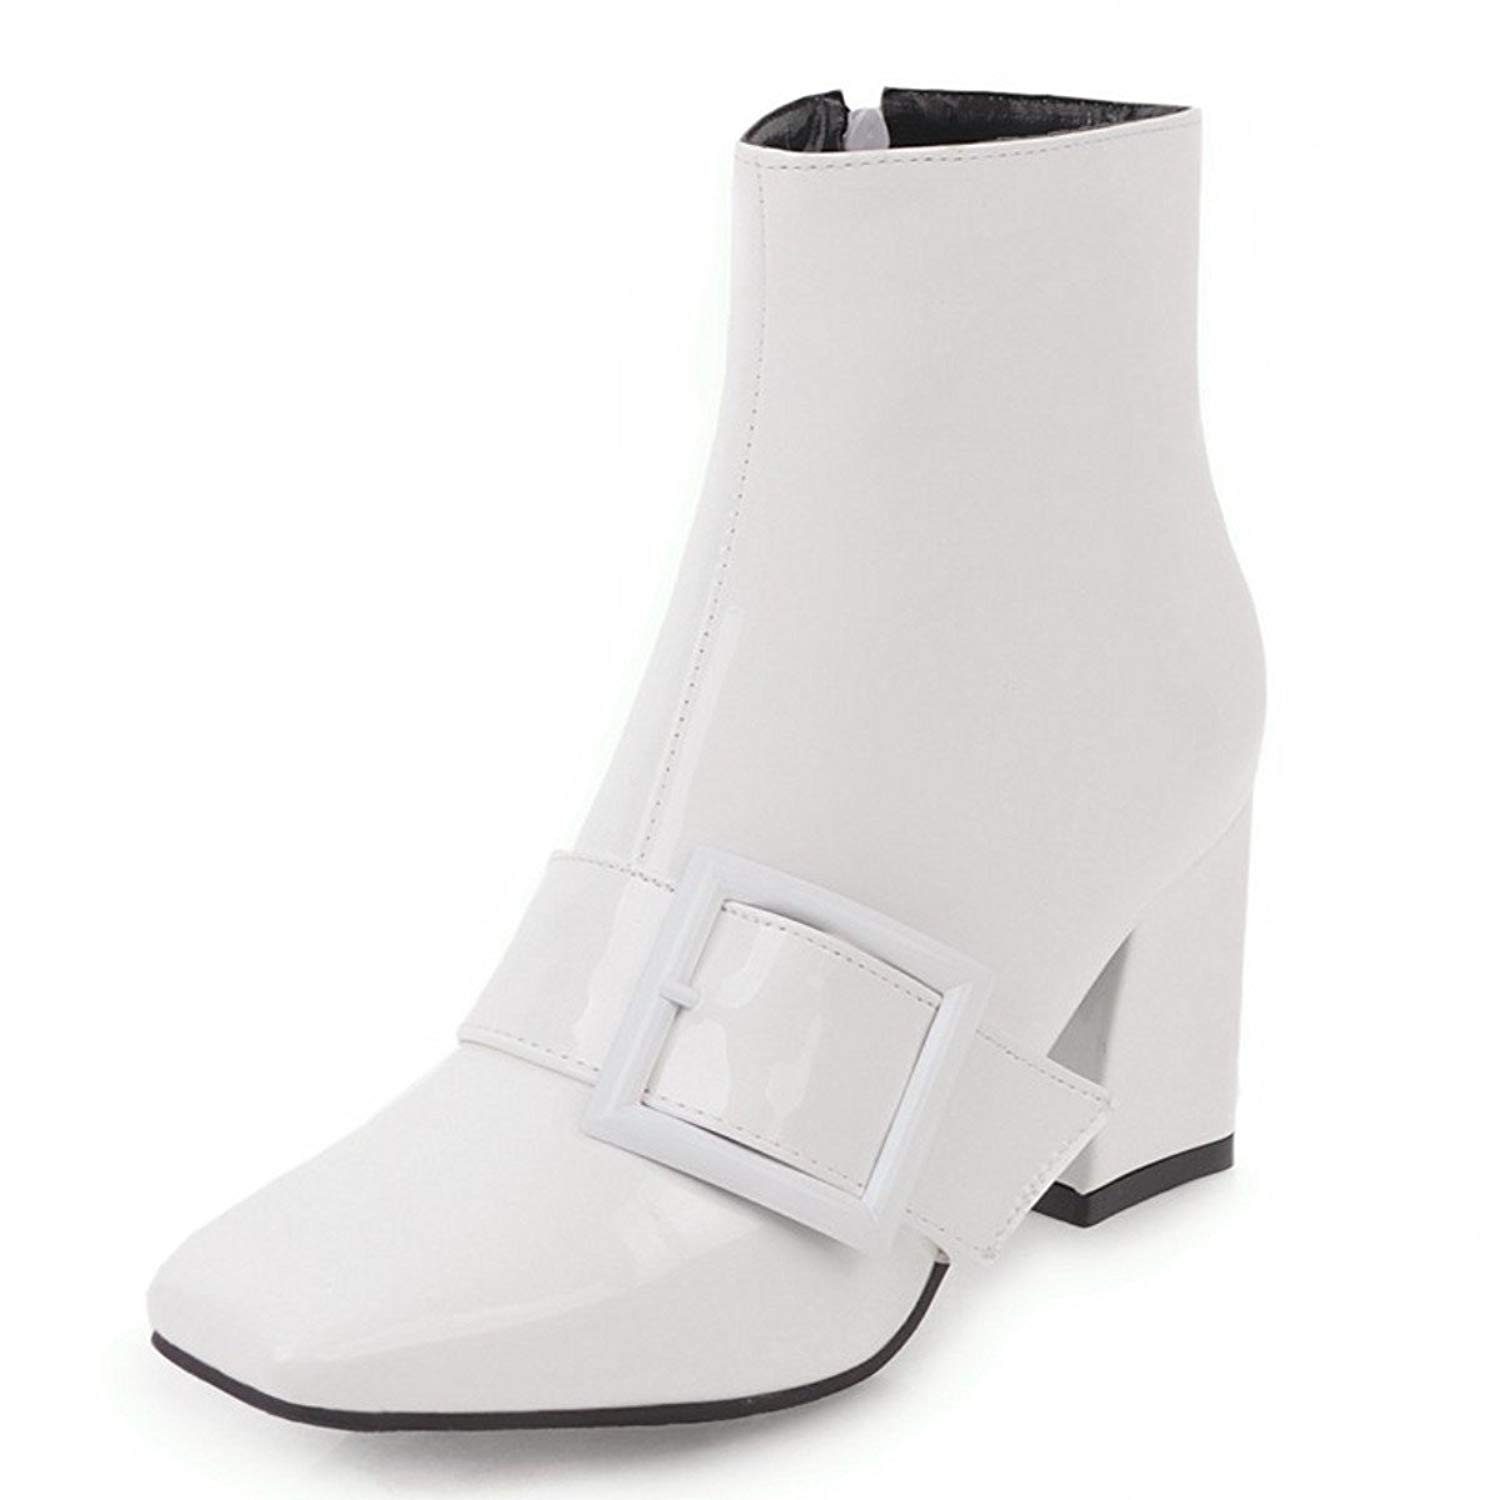 25198ea6ca5 Get Quotations · Rongzhi Womens Ankle Boots Buckle Zip Thick Block Heels  Square Toe Booties Shiny Patent Leather